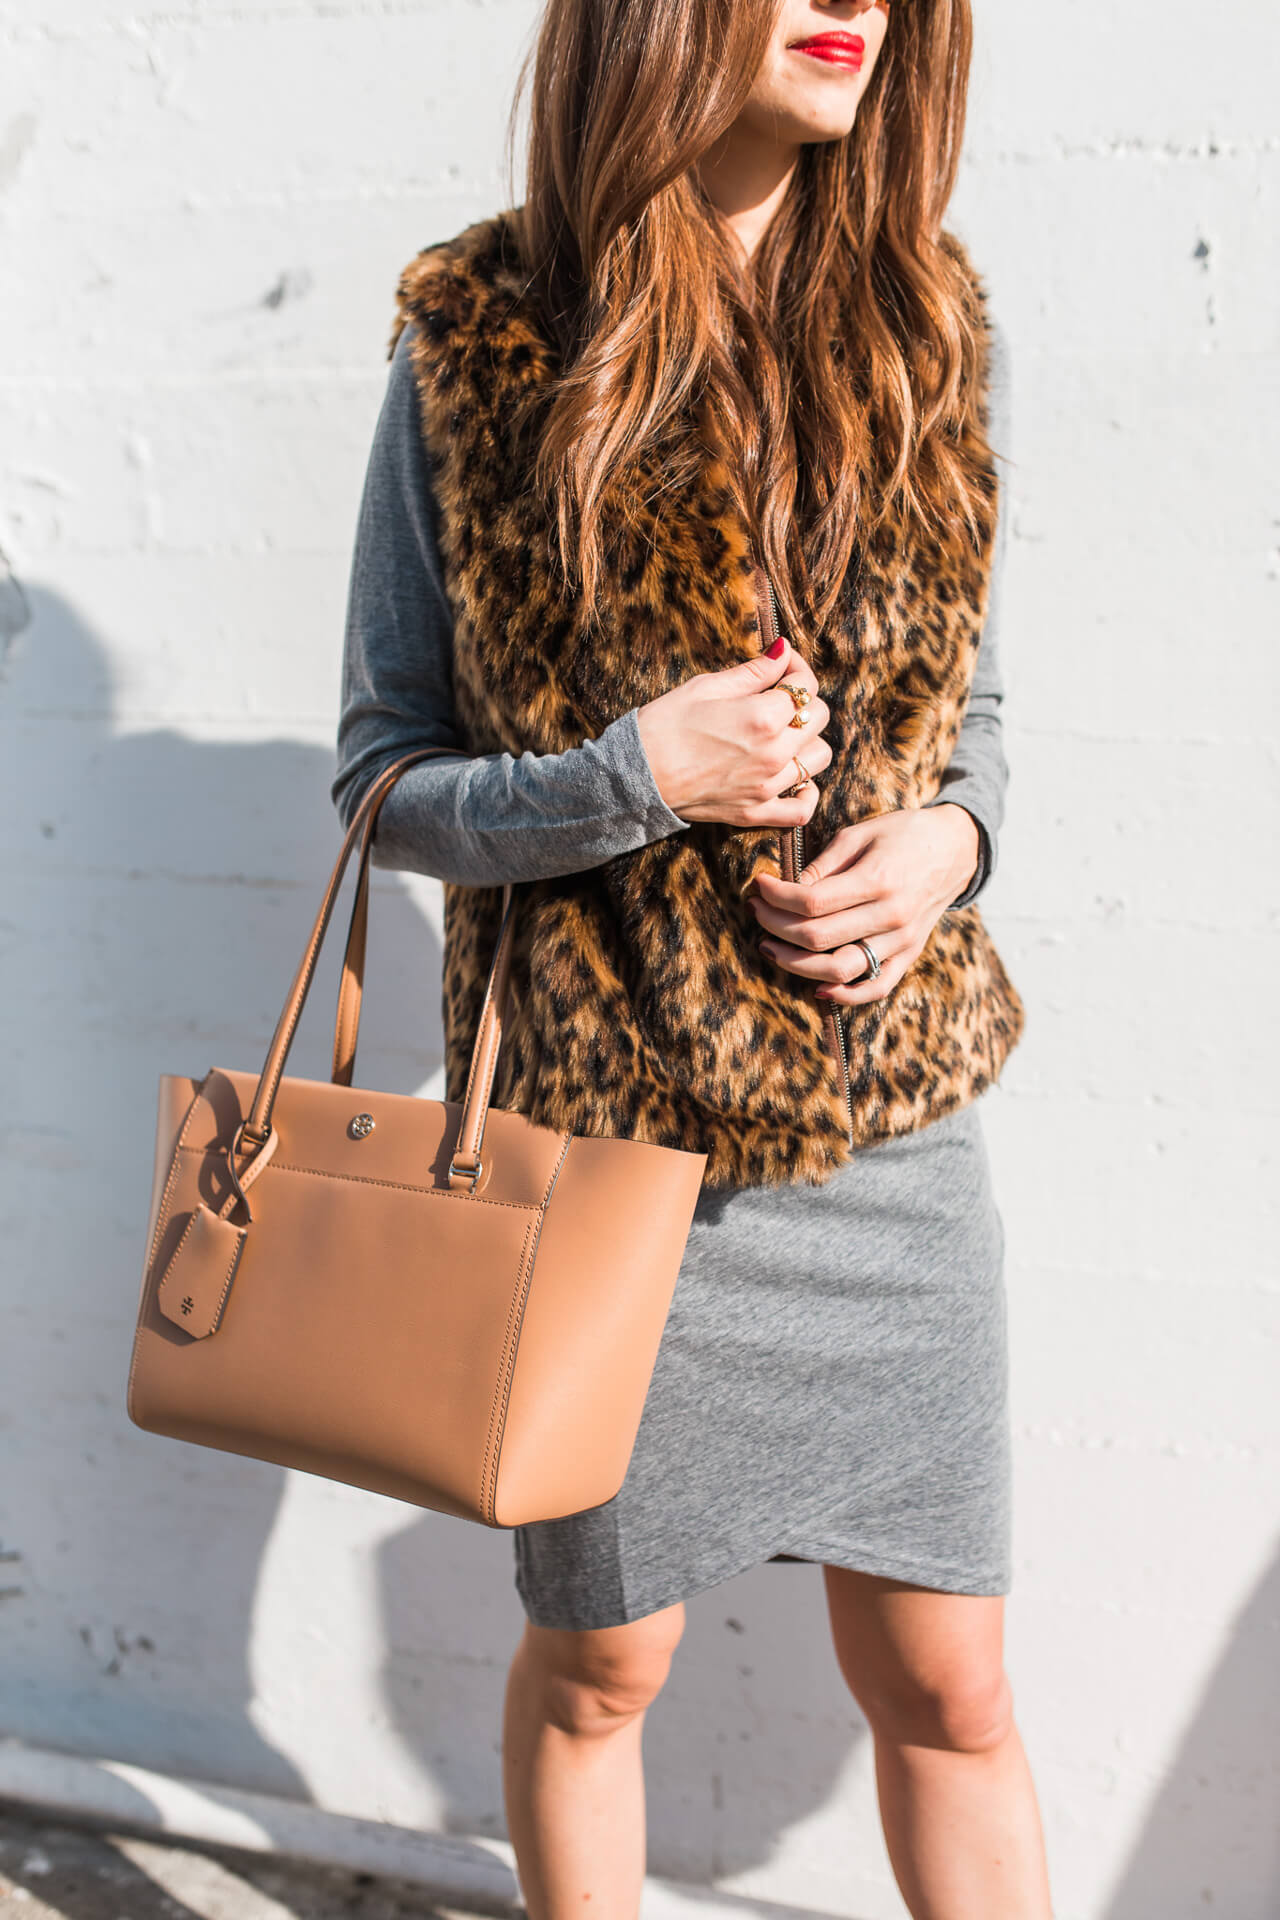 Styling a camel colored bag for the fall season